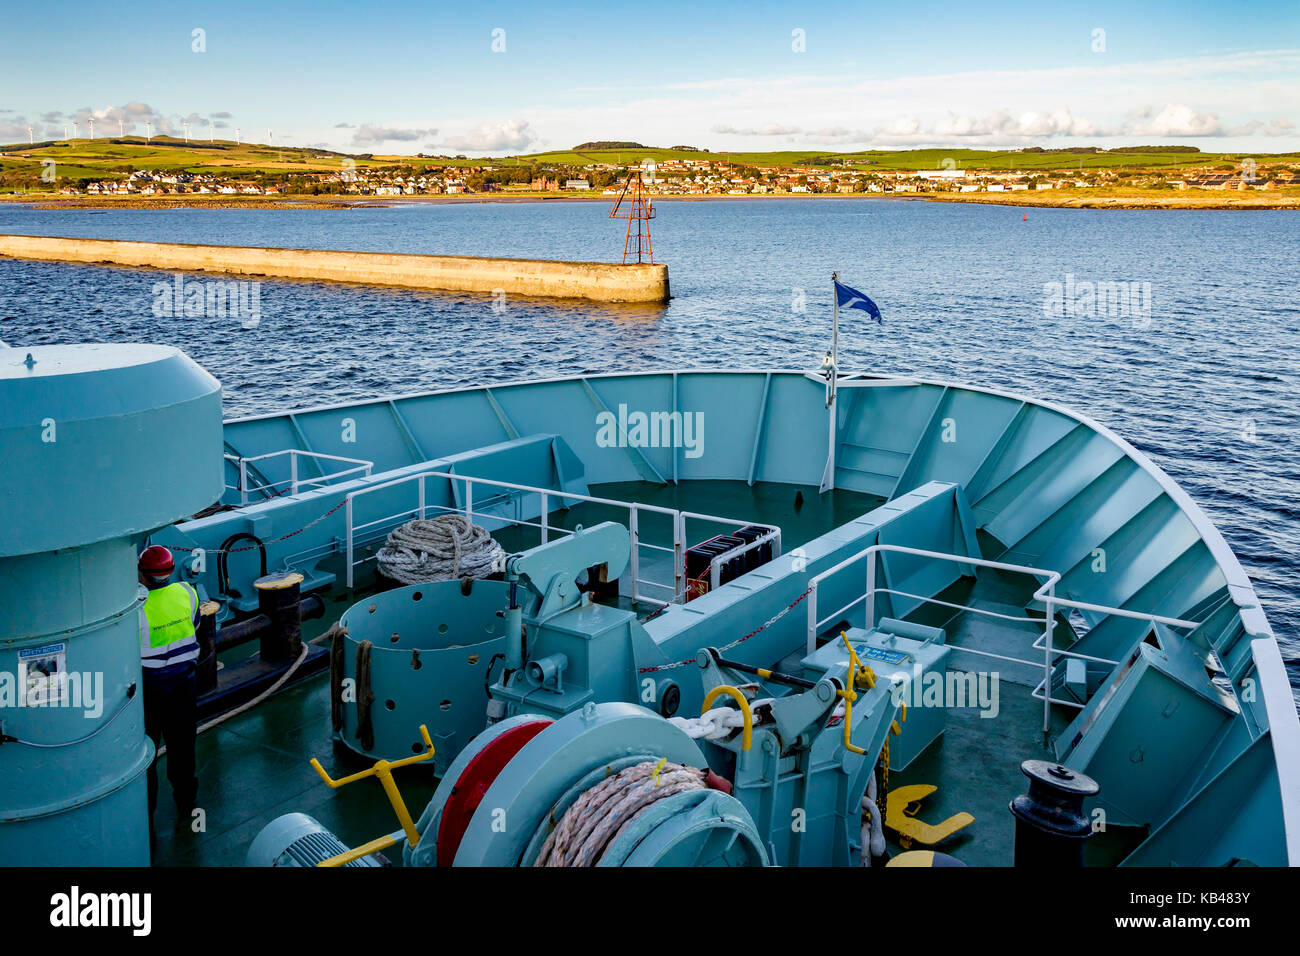 Entering Brodrick harbour, Isle of Arran, Scotland. - Stock Image